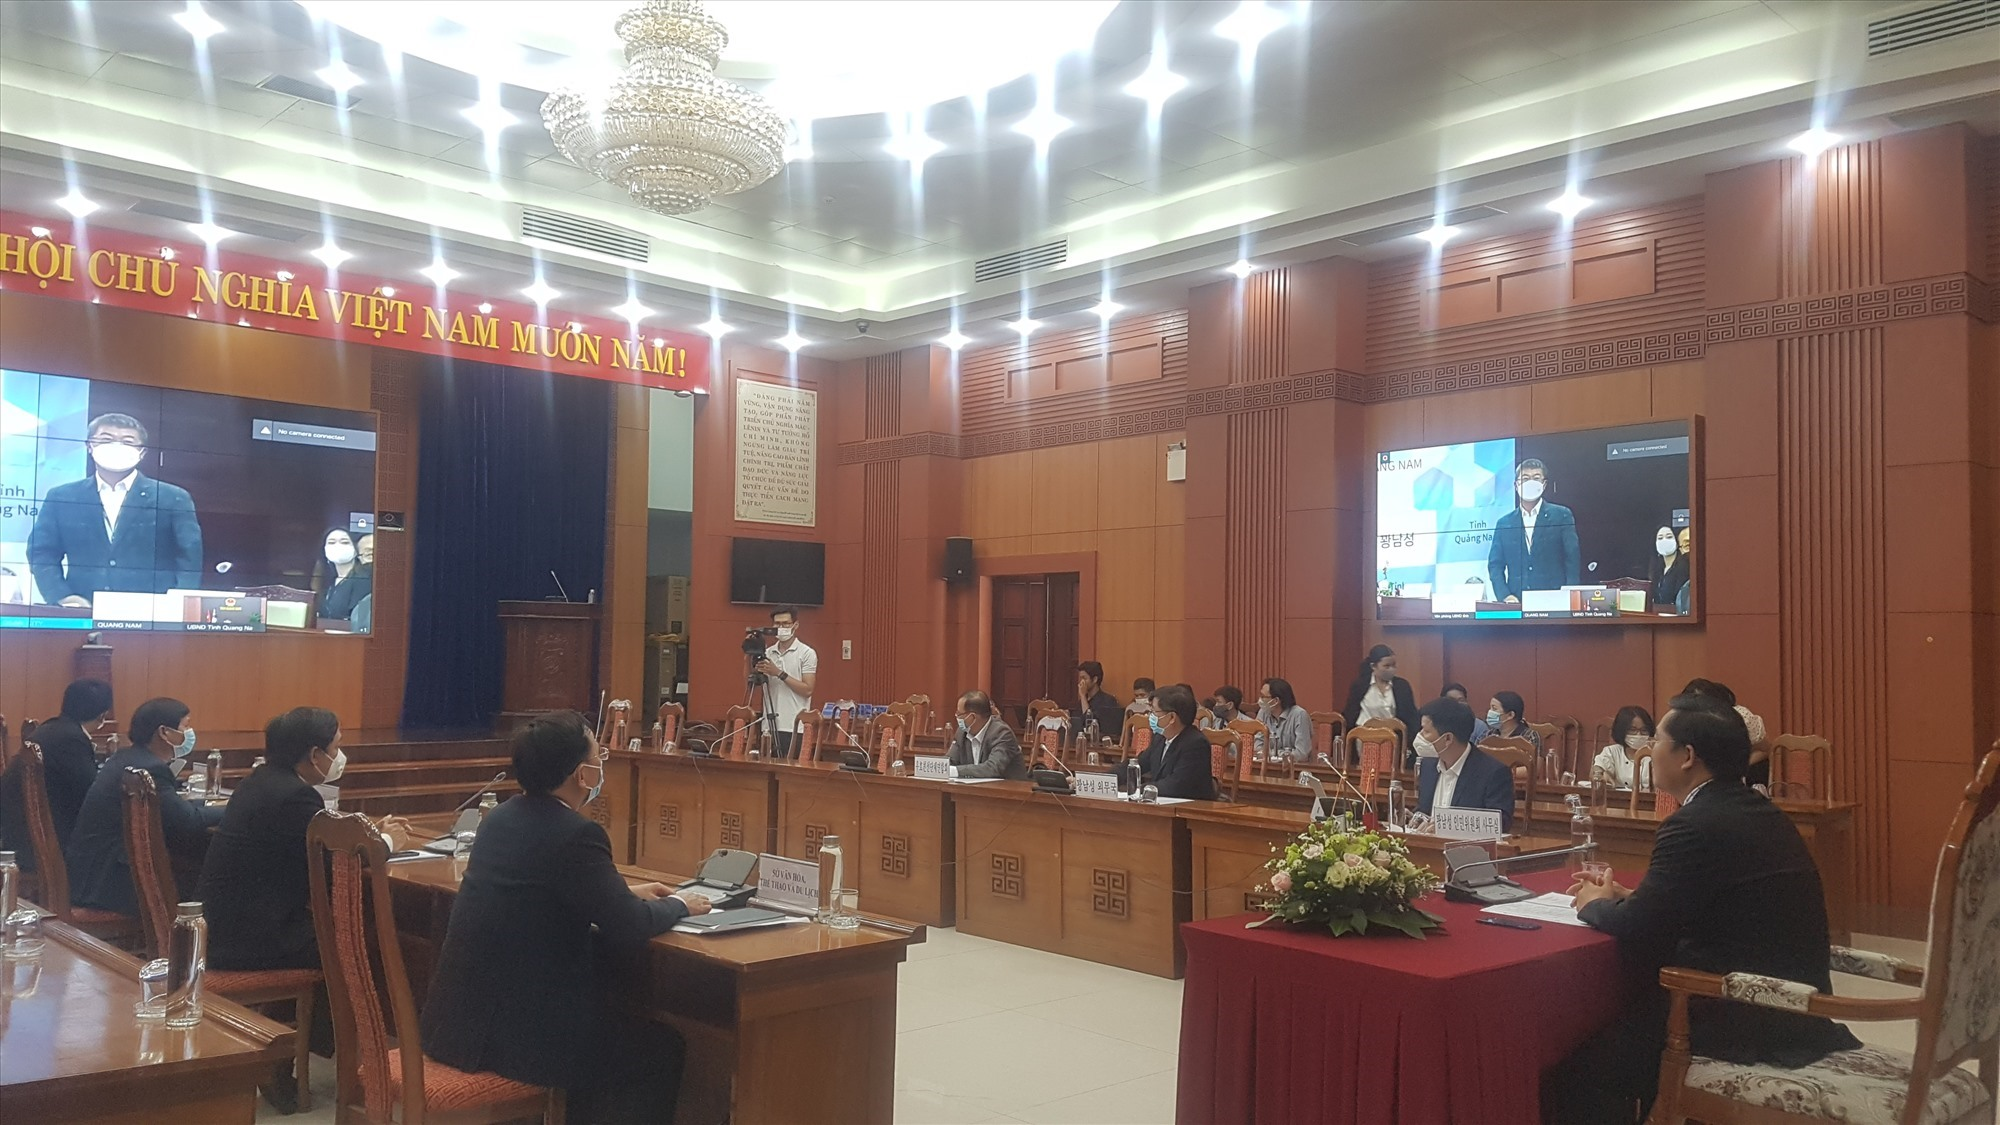 The virtual meeting between leaders of Osan city and Quang Nam province